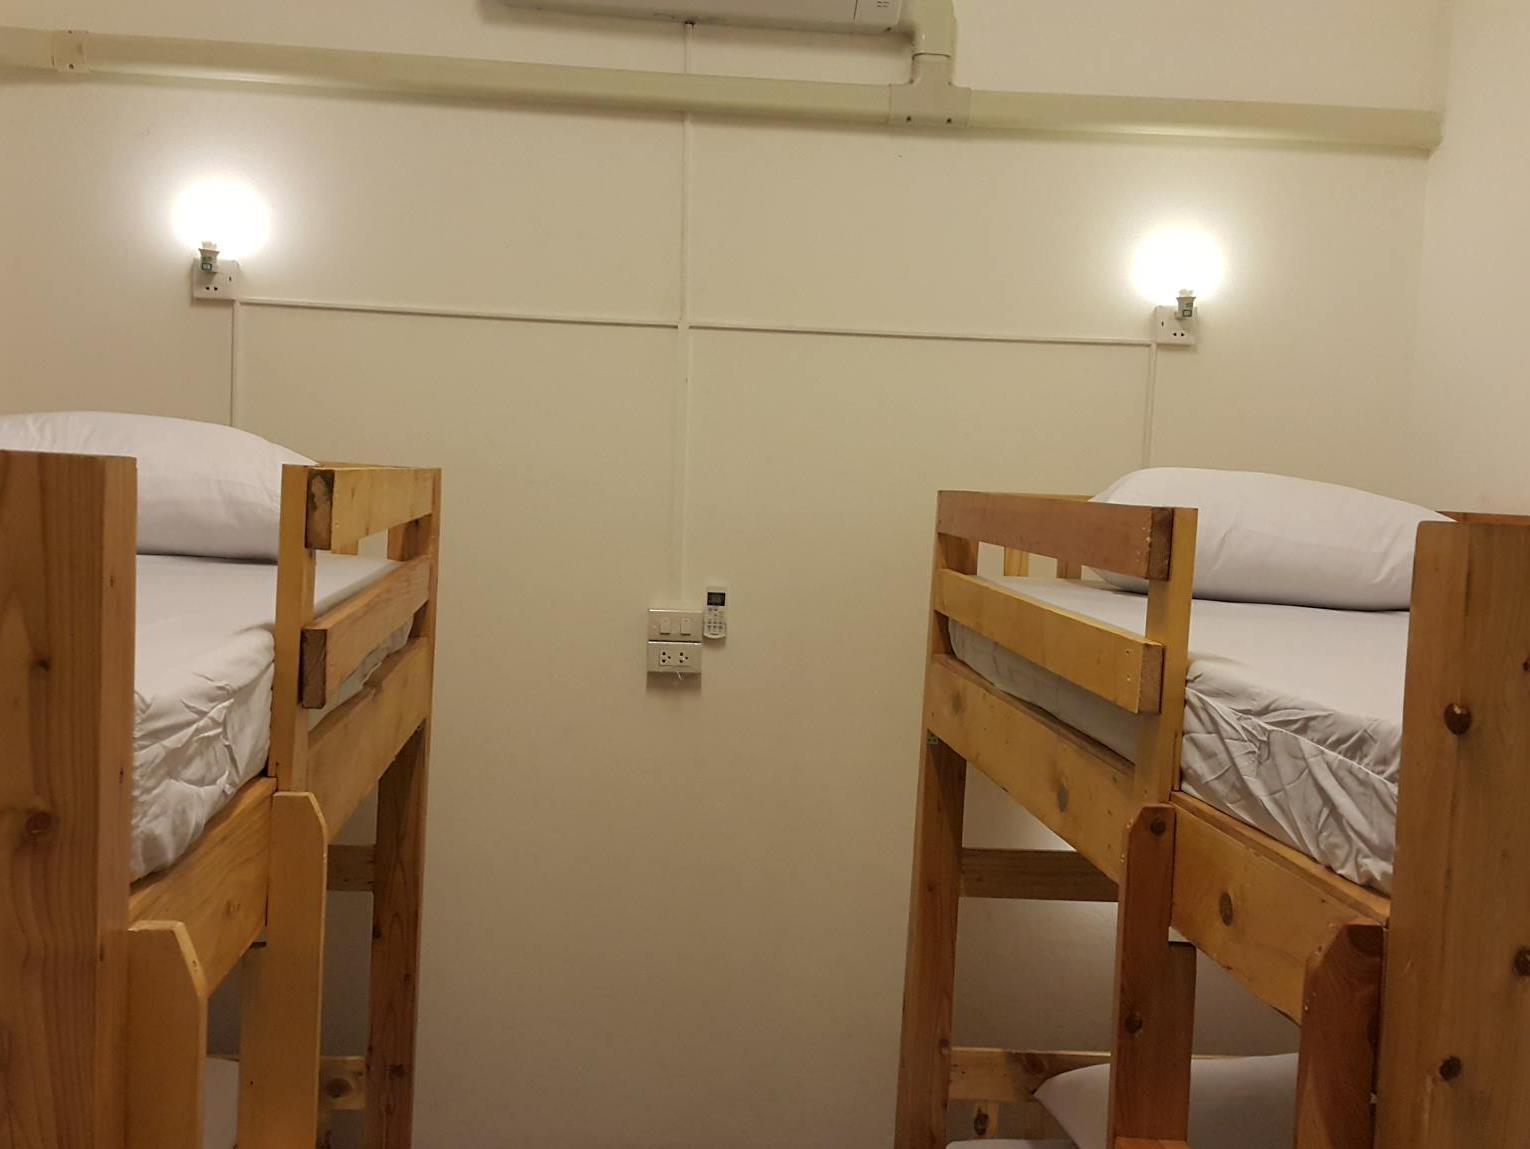 Bed in 4-Bed Mixed Dormitory Room - A